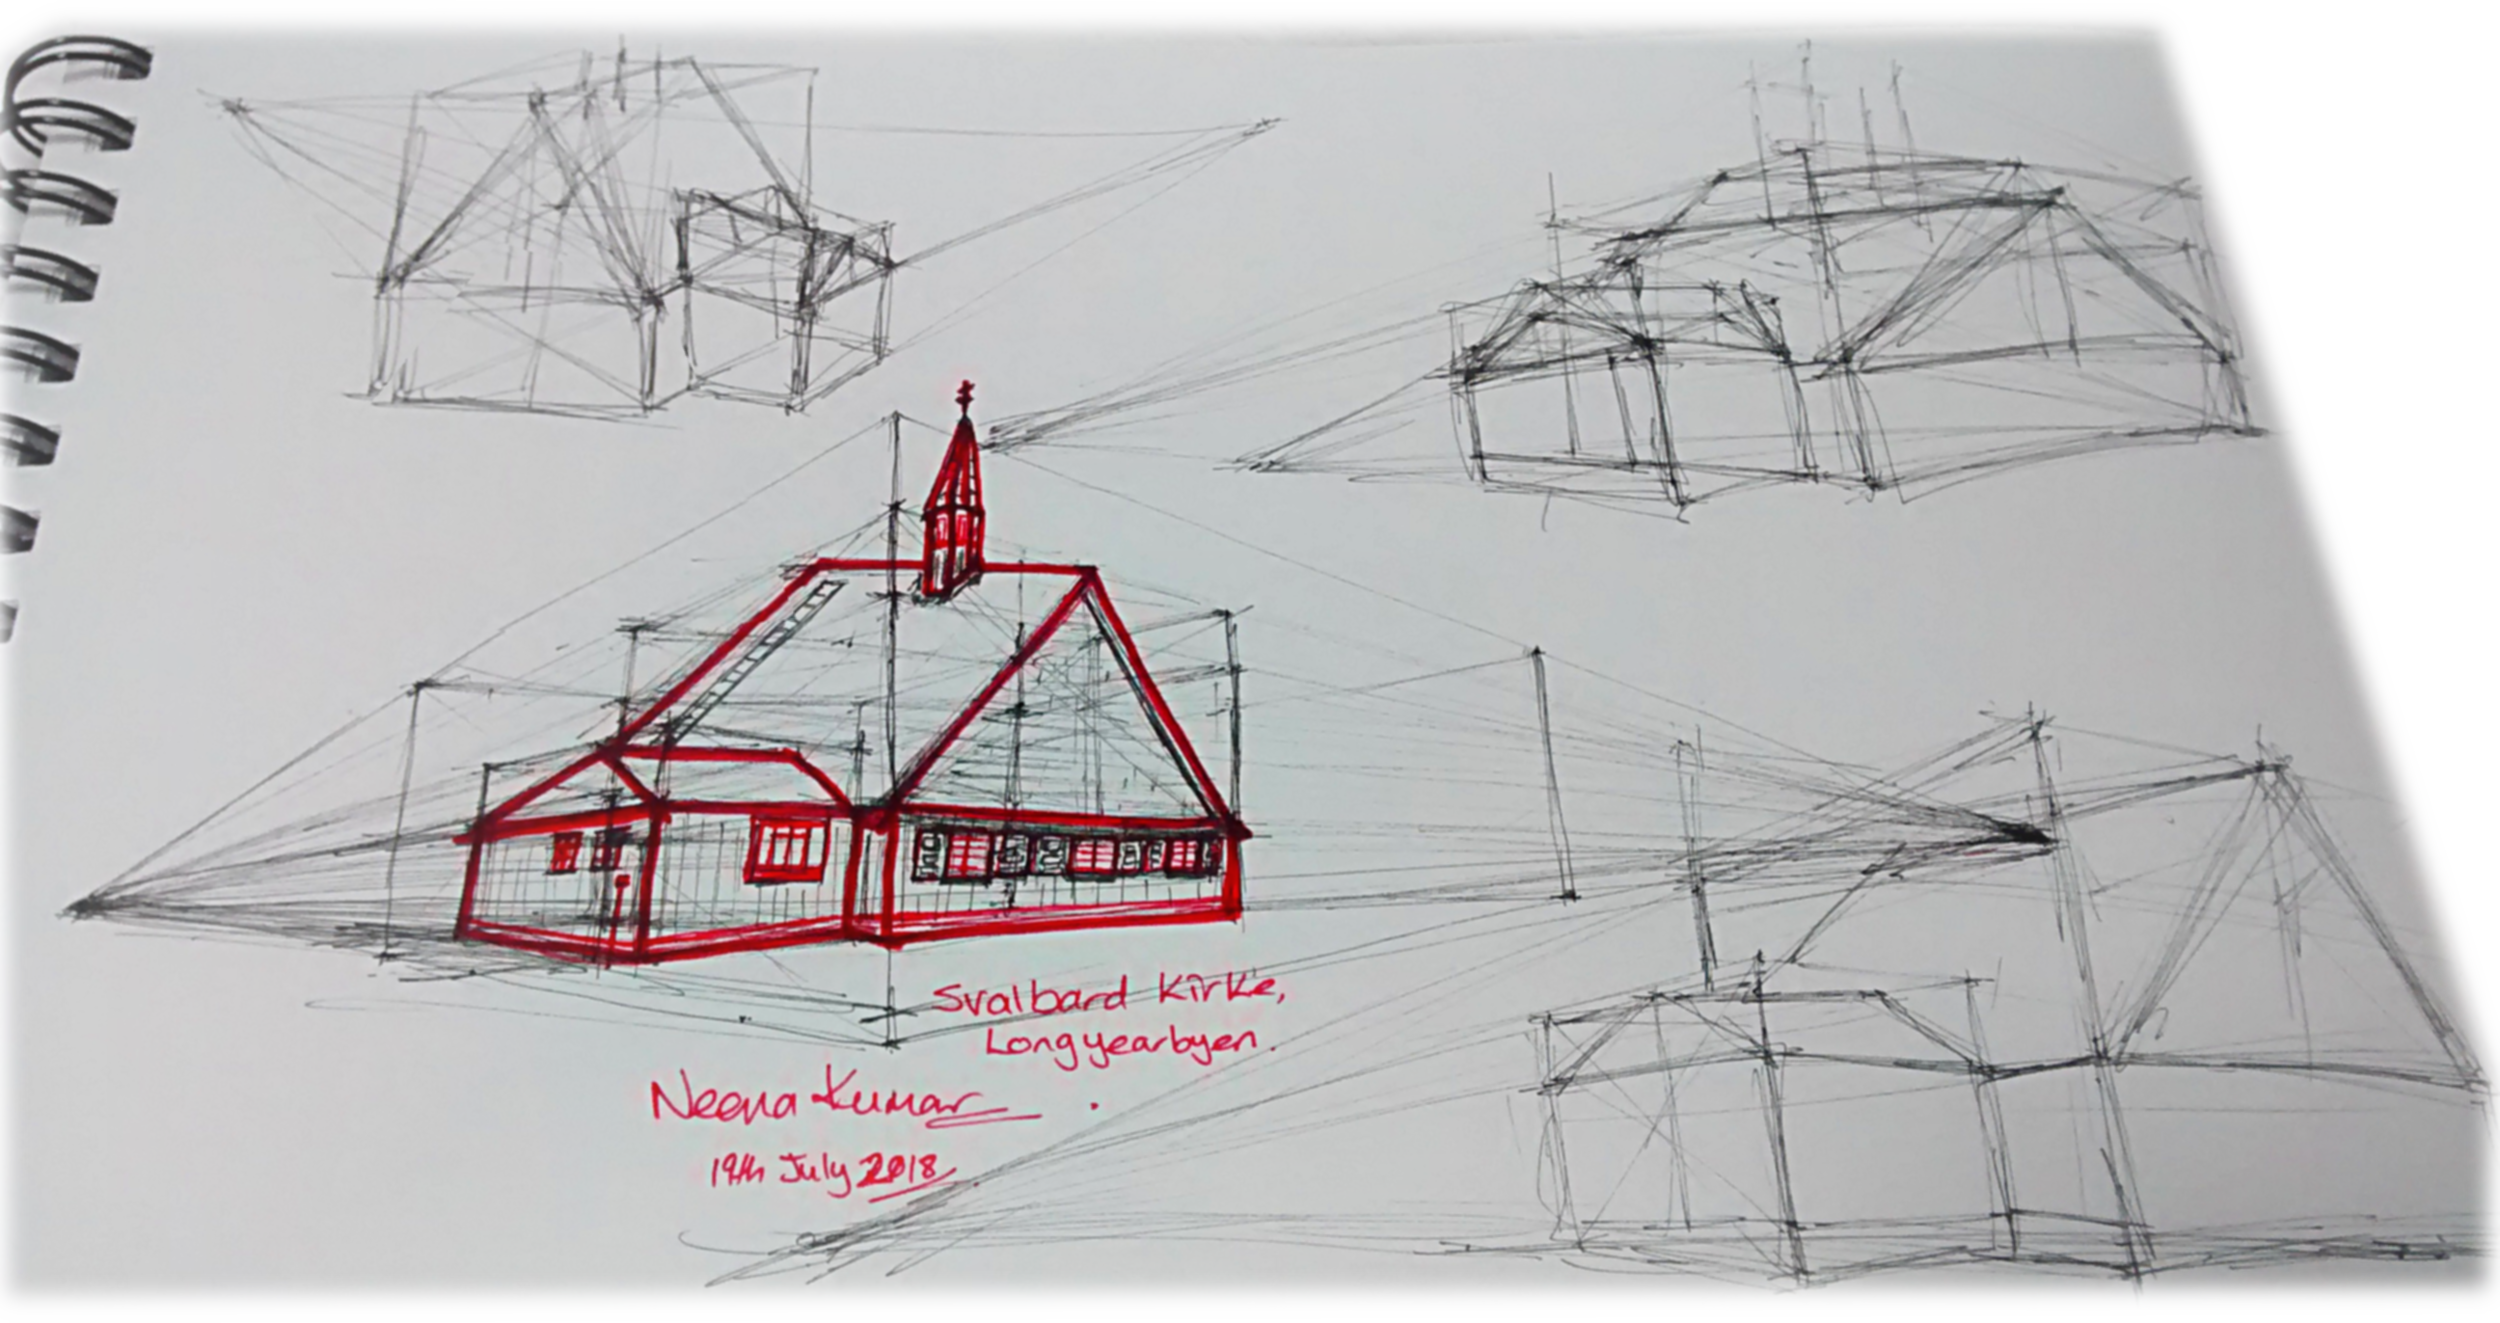 I was in the Arctic Longyearbyen, Svalbard and this is my take on Svalbard Kirke.  Ooops!